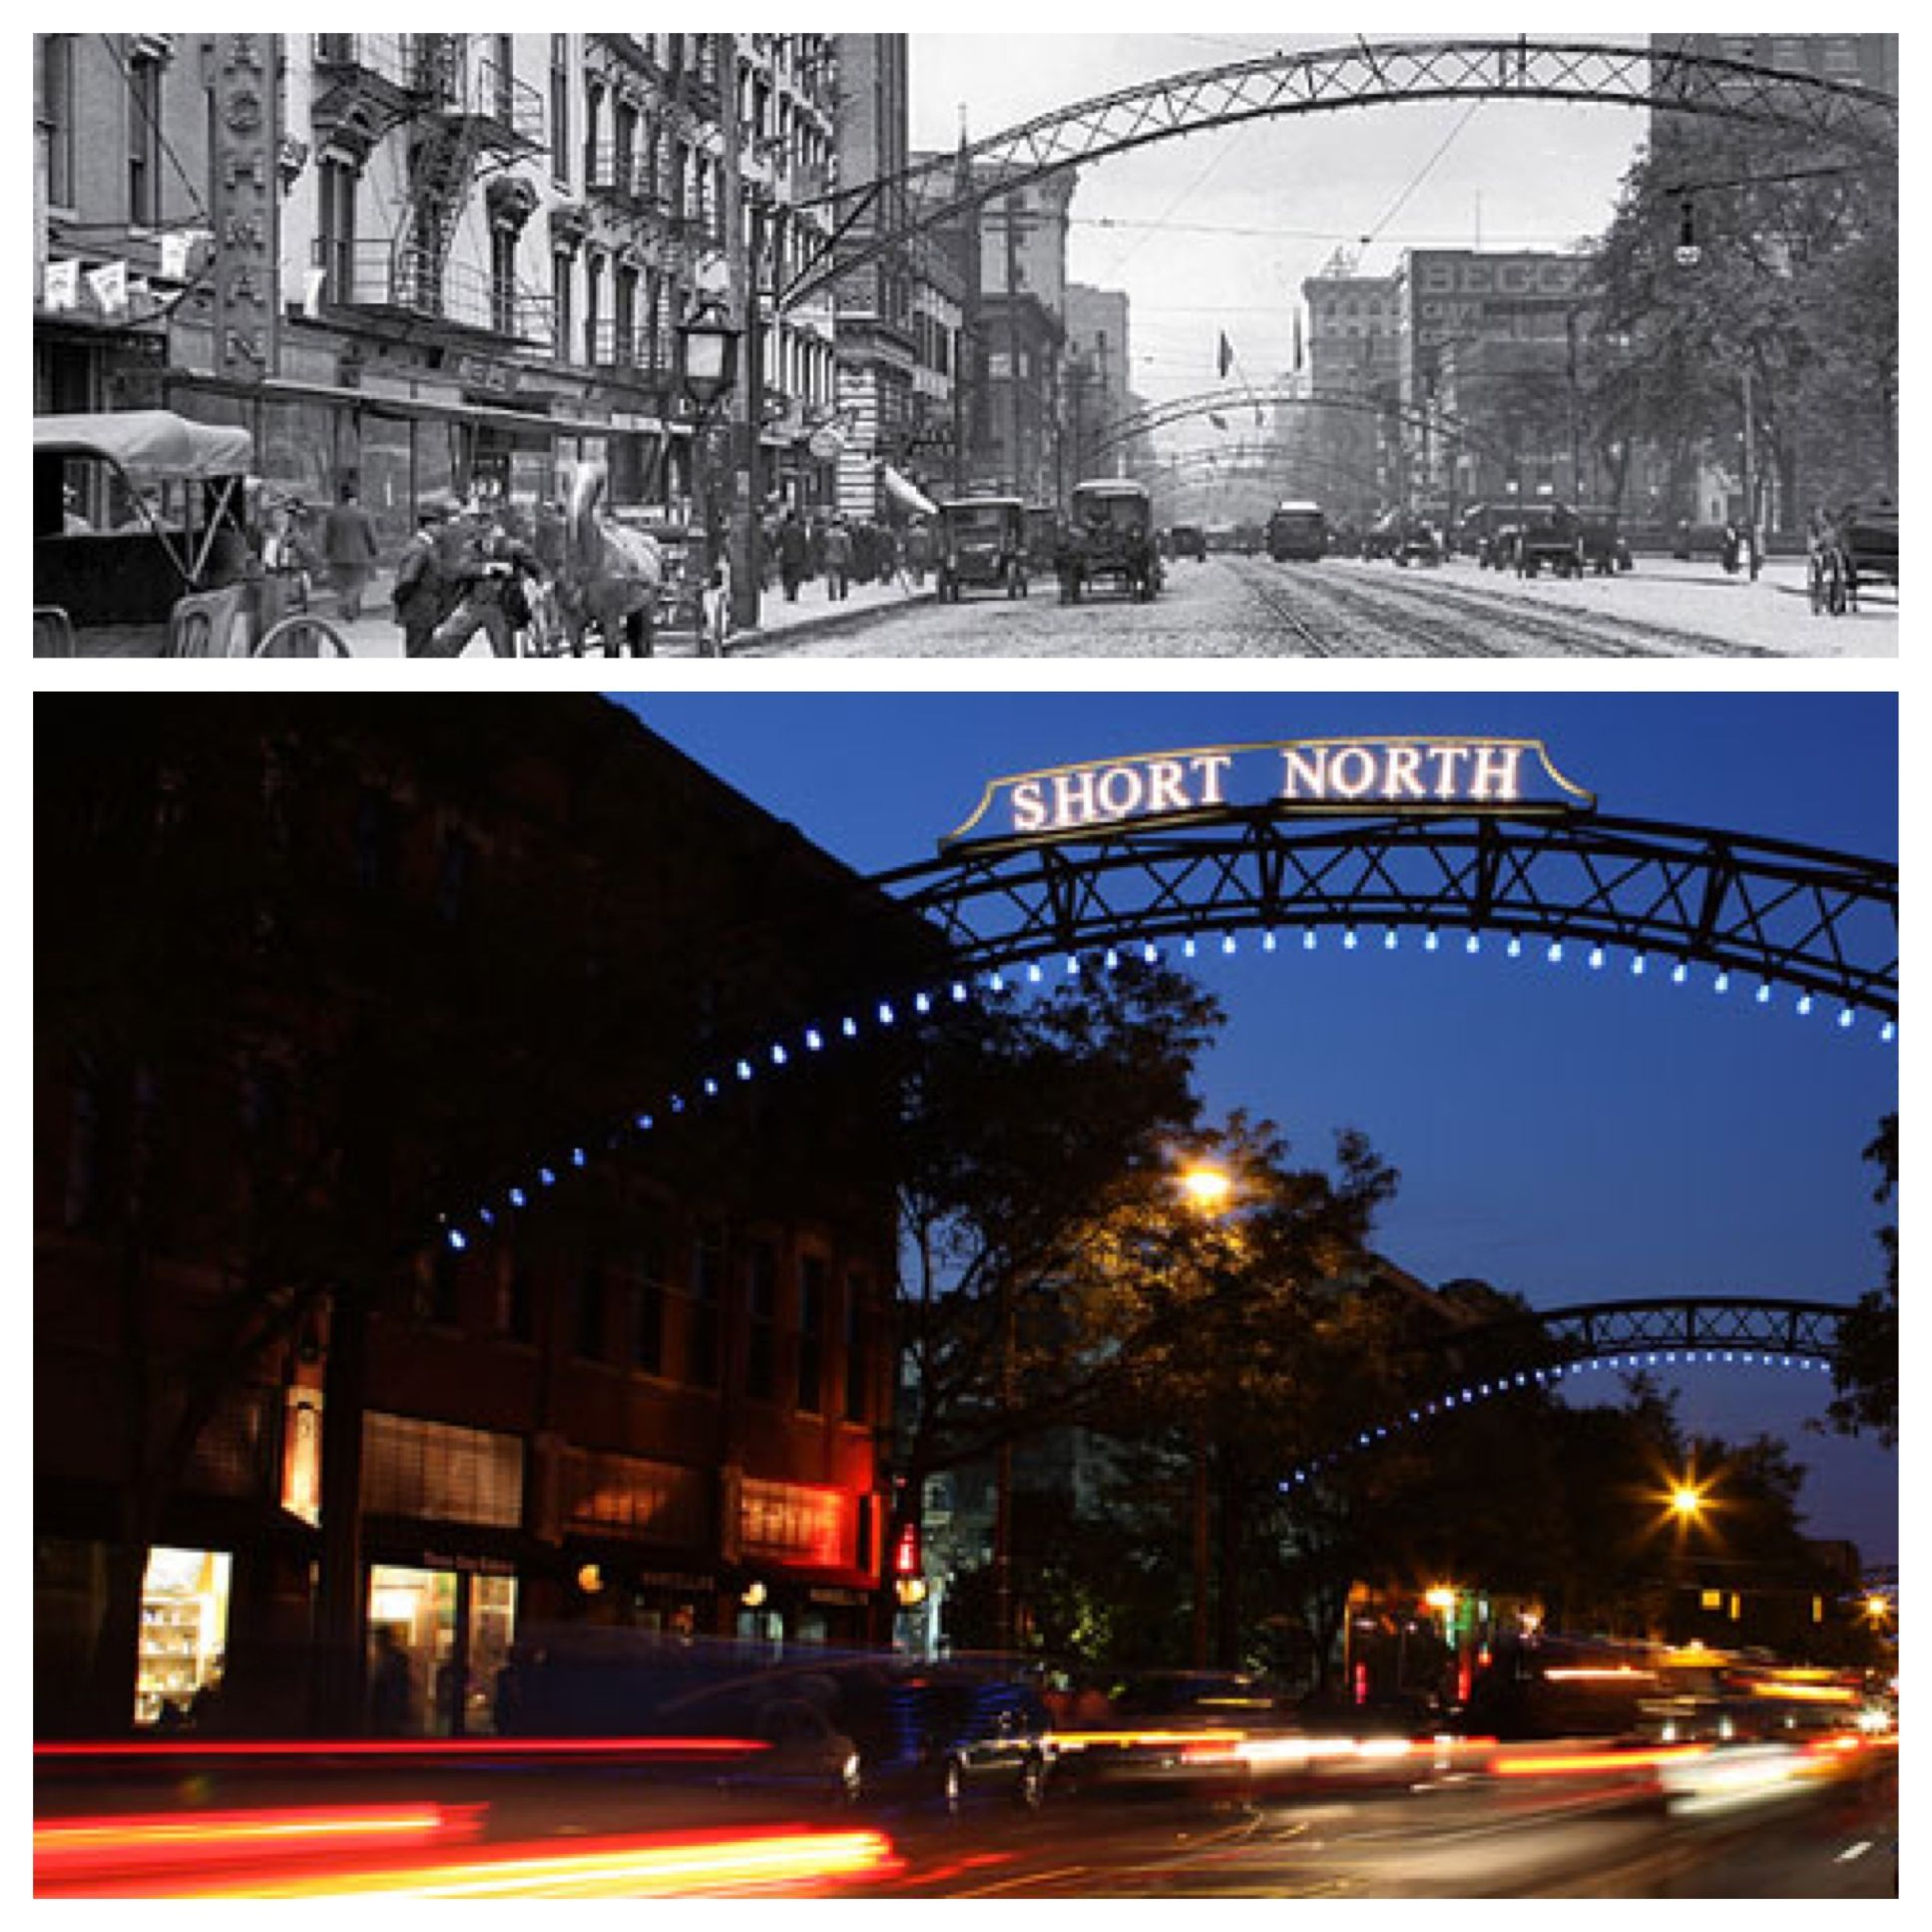 Short North - Columbus, Ohio Then & Now